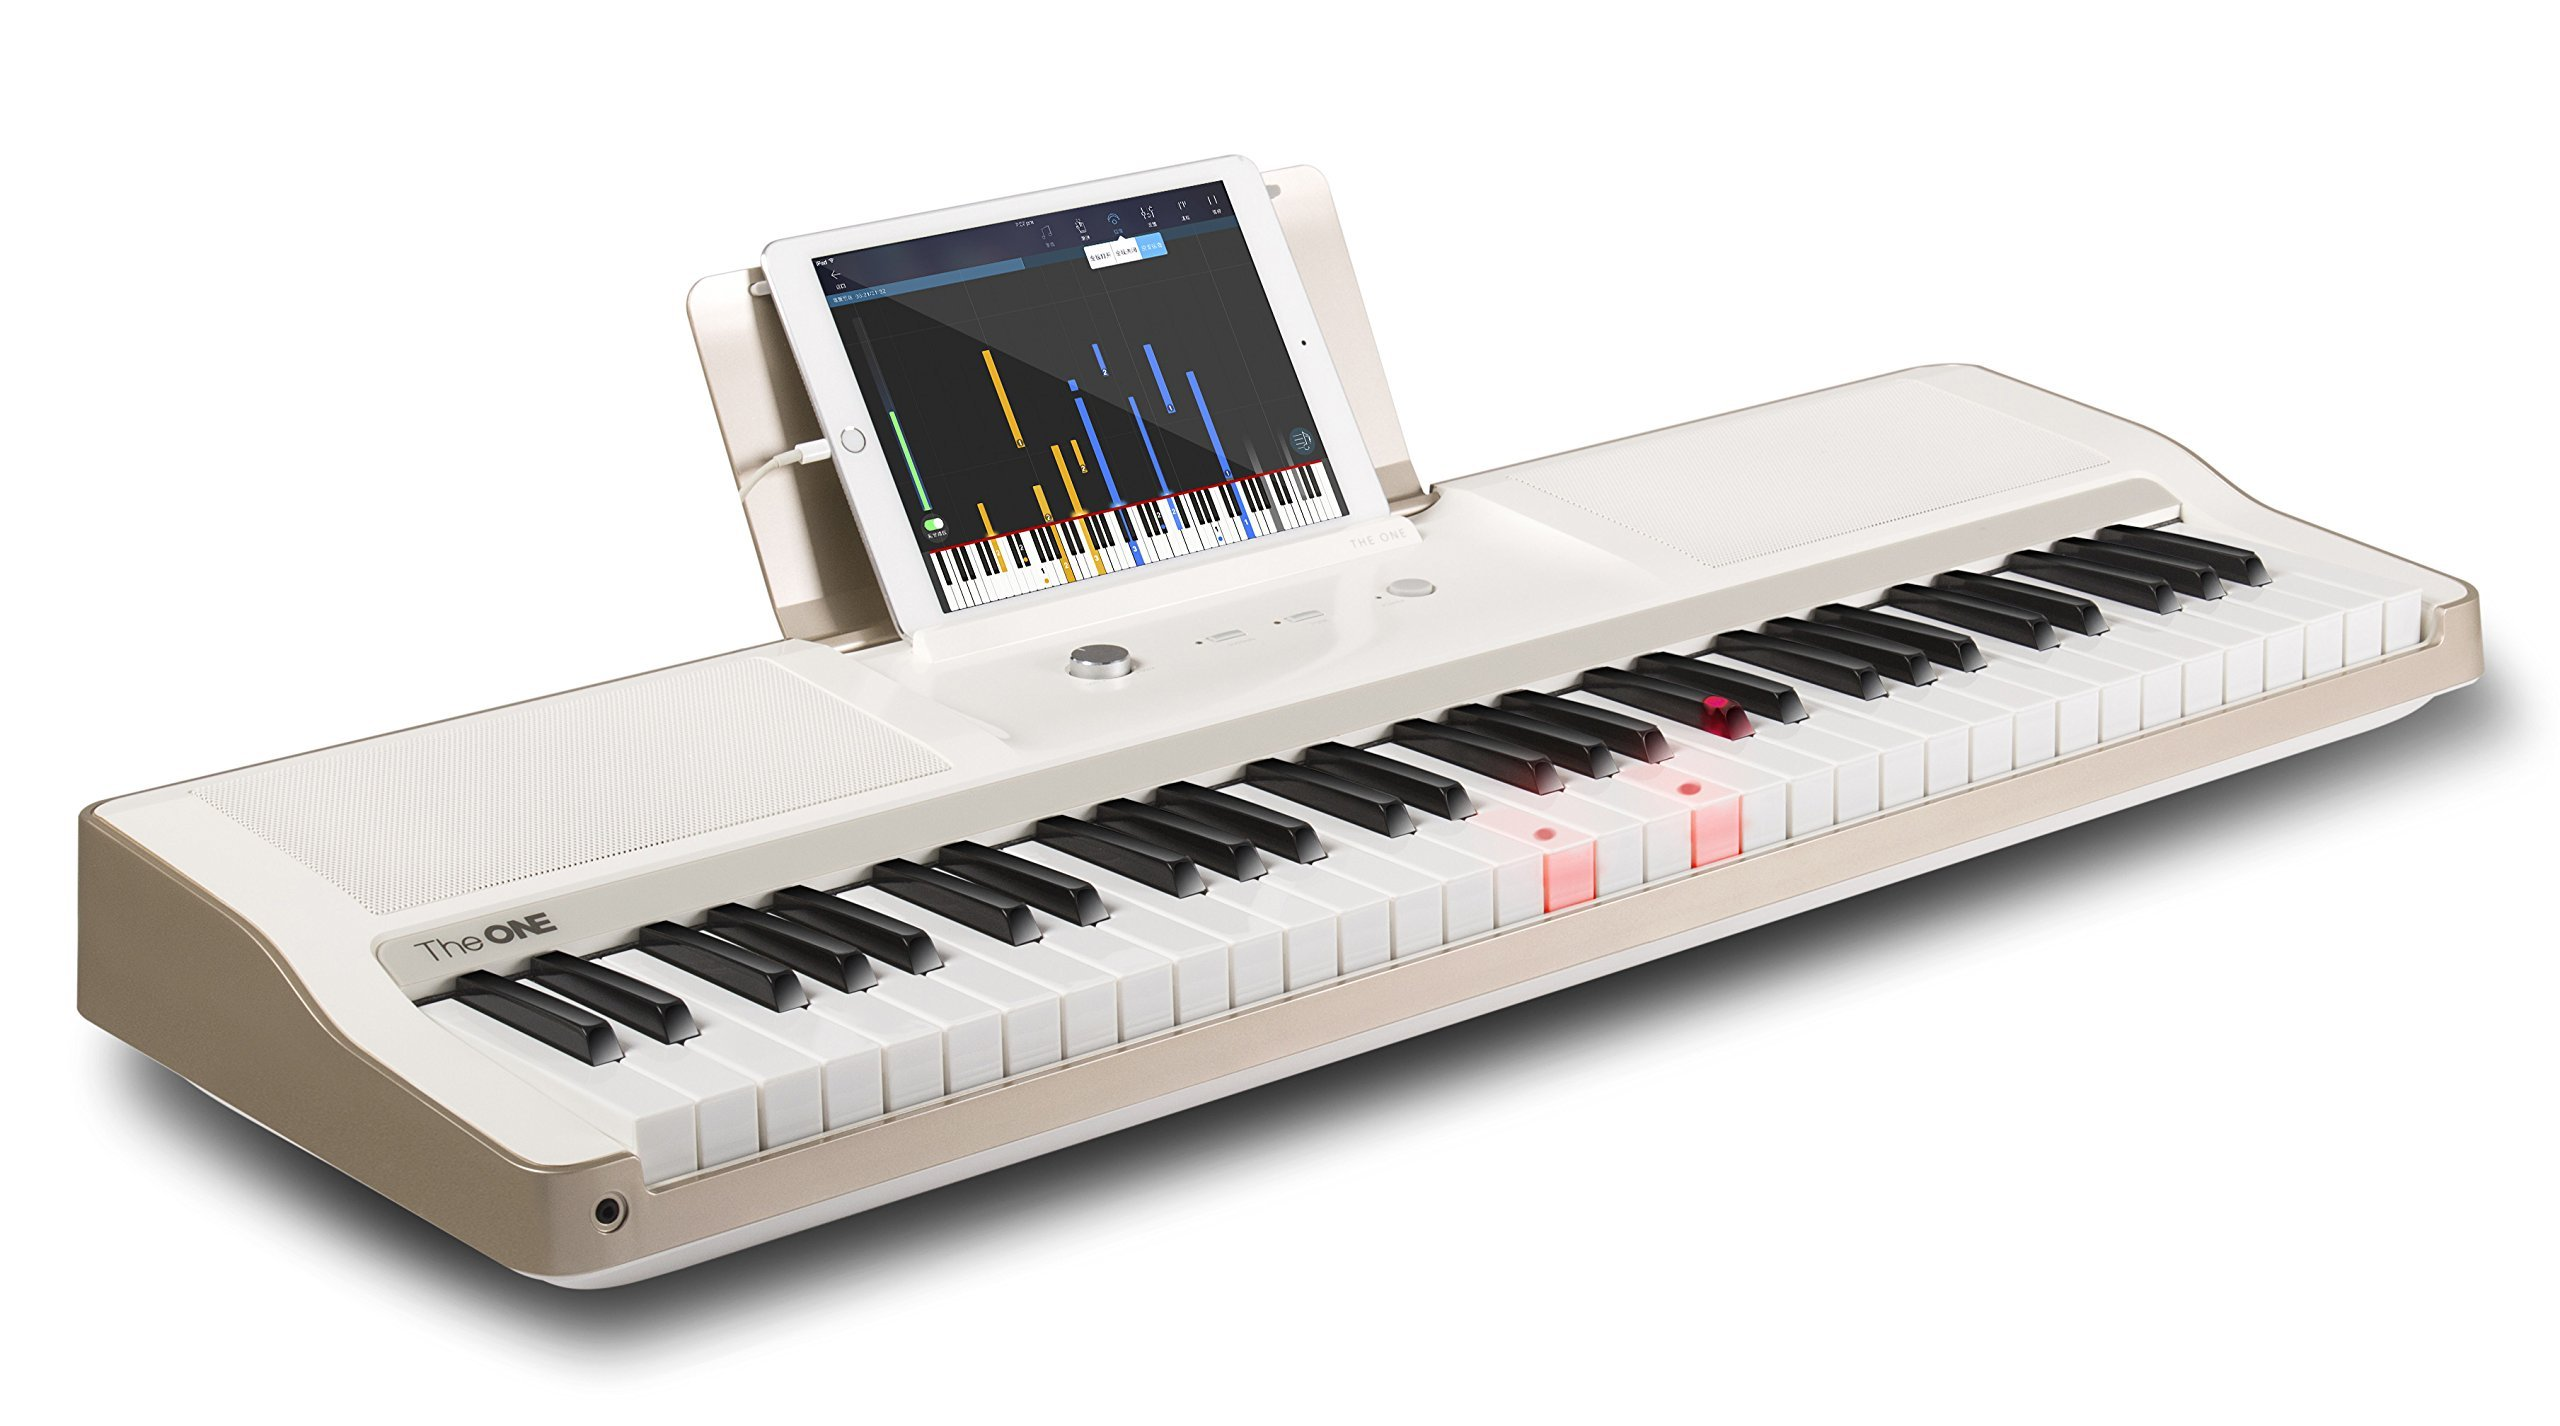 The ONE Smart Piano Keyboard with Lighted Keys, Electric Piano 61 keys, Home Digital Music Keyboard, Teaching Portable Keyboard Piano, White by The ONE Music Group